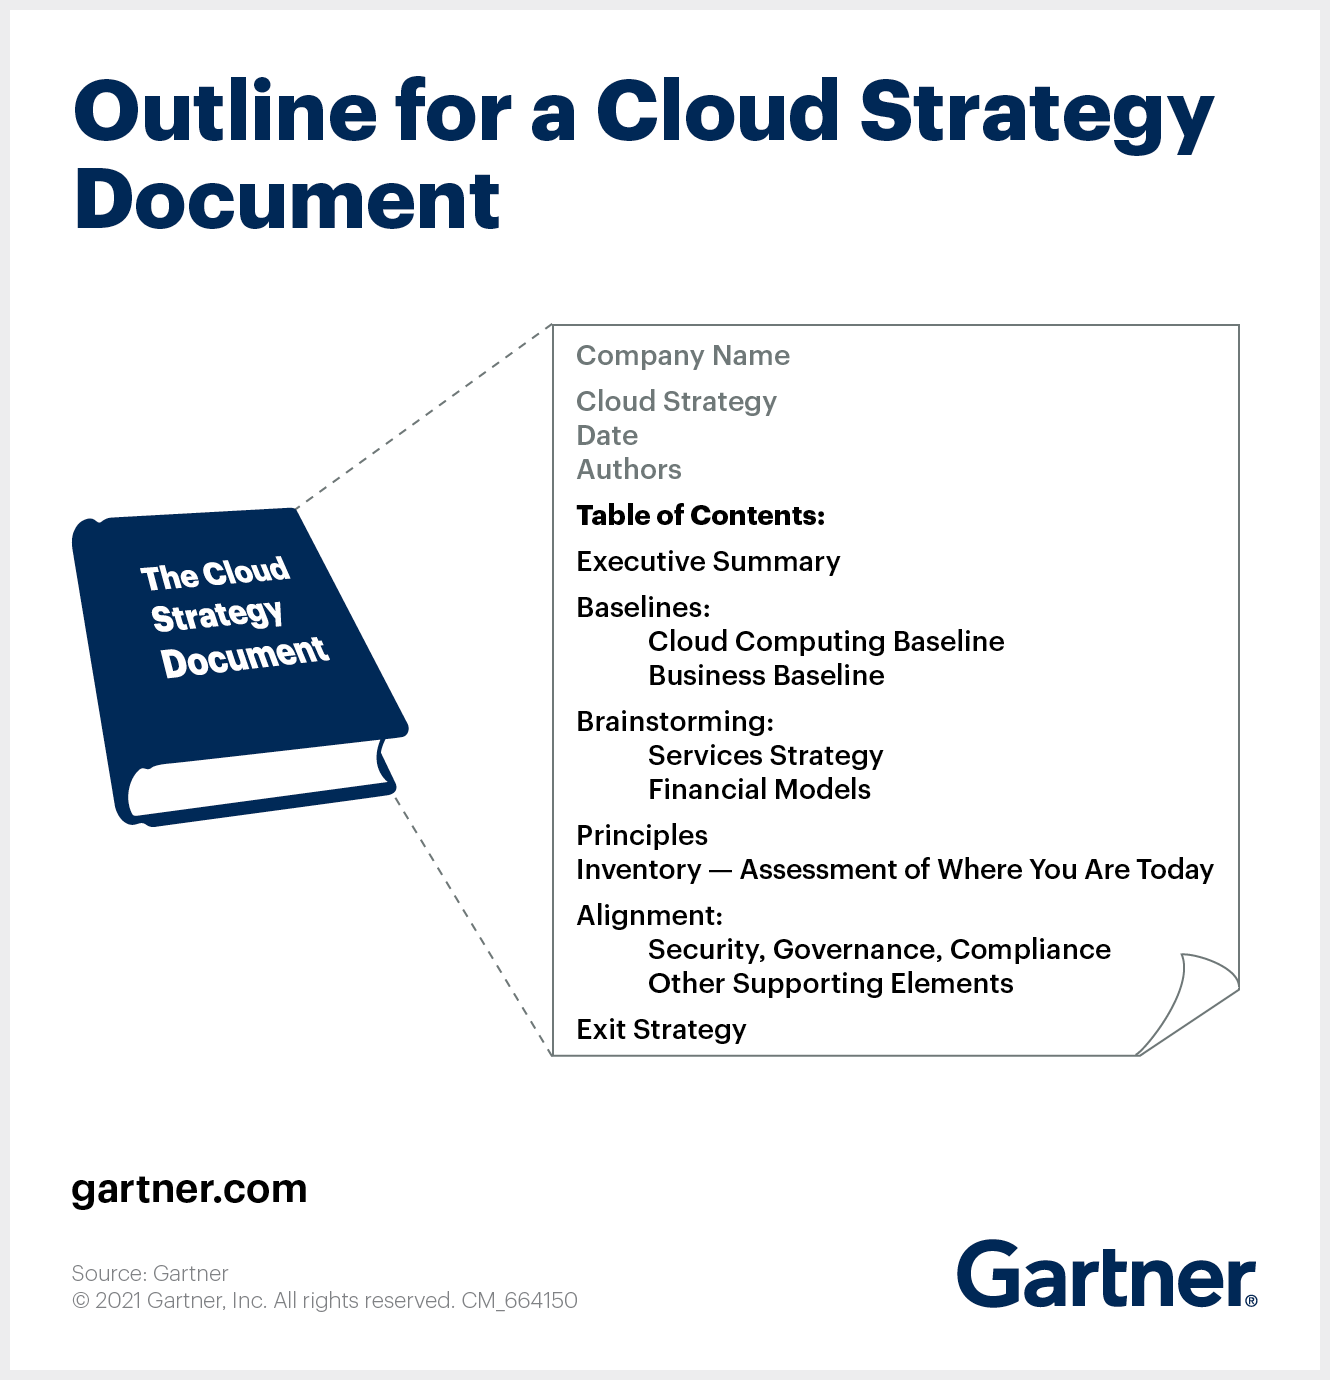 Cloud Strategy Outline from Cookbook Document